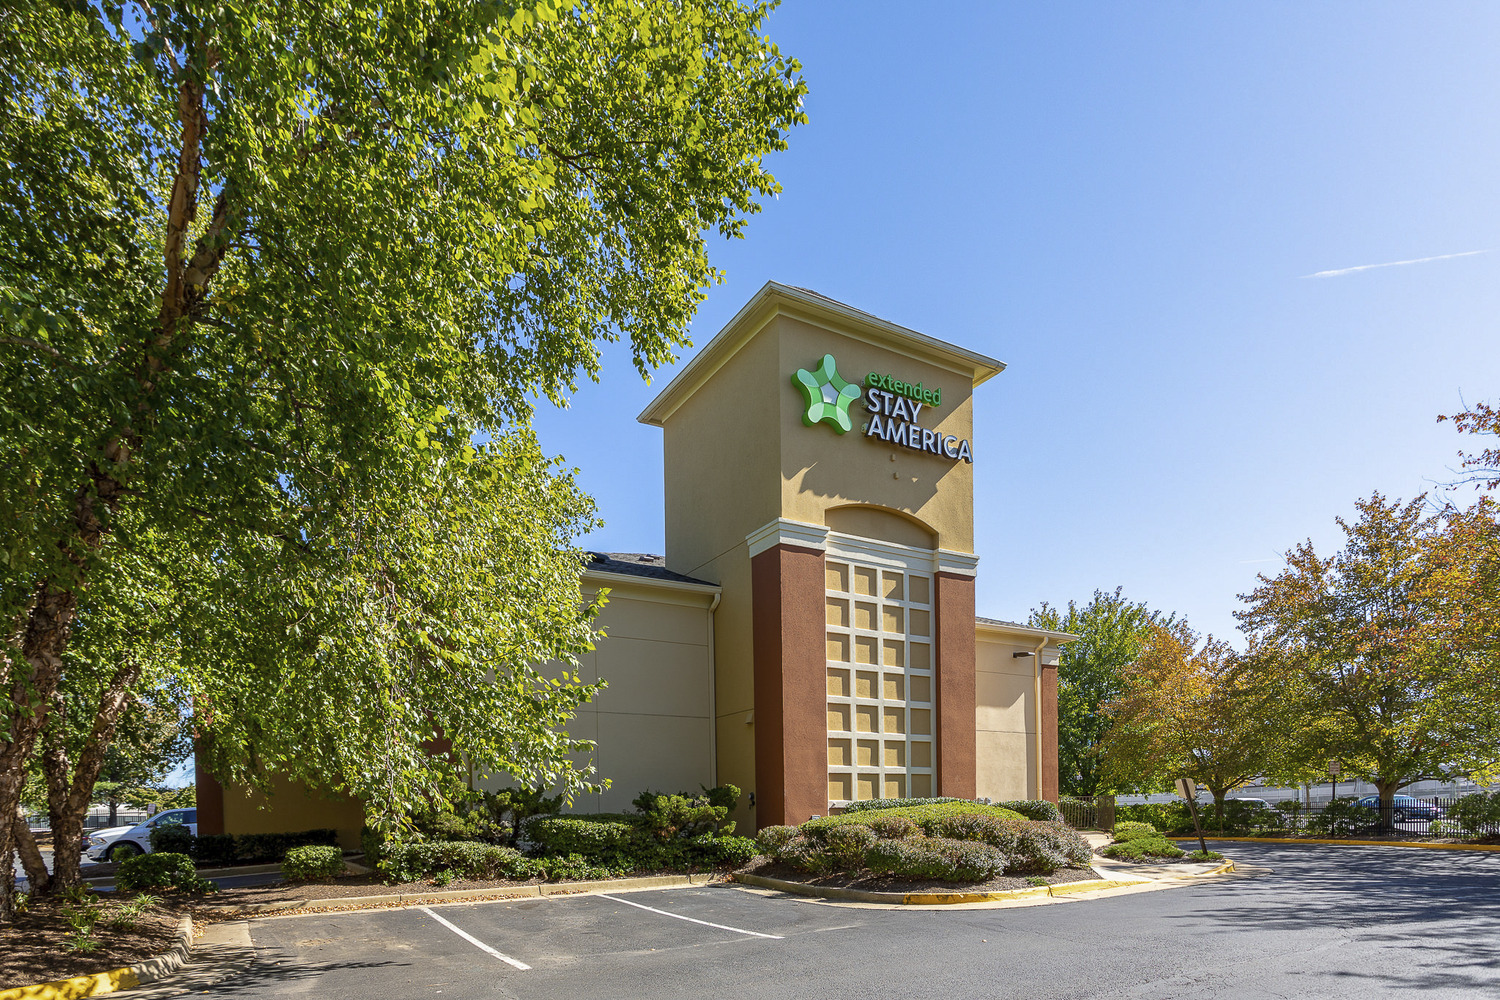 CBG builds Extended Stay America at Fair Oaks, a 133-Unit Extended Stay Hotel in Fairfax, VA